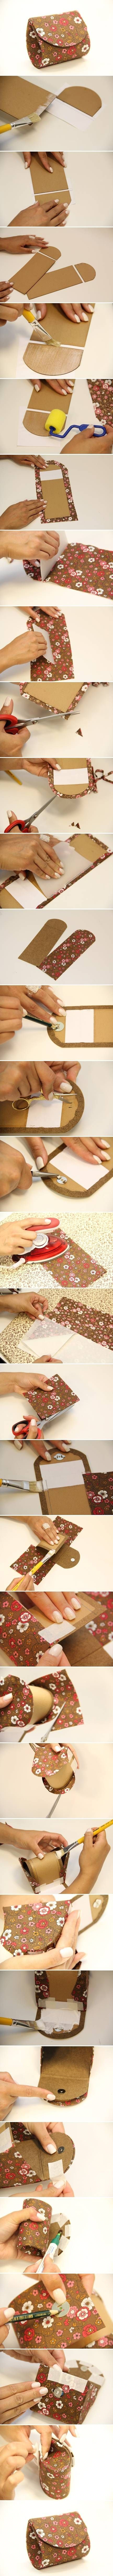 DIY Money Pouch crafts craft ideas easy crafts diy ideas. Use cereal boxes, milk boxes etc.